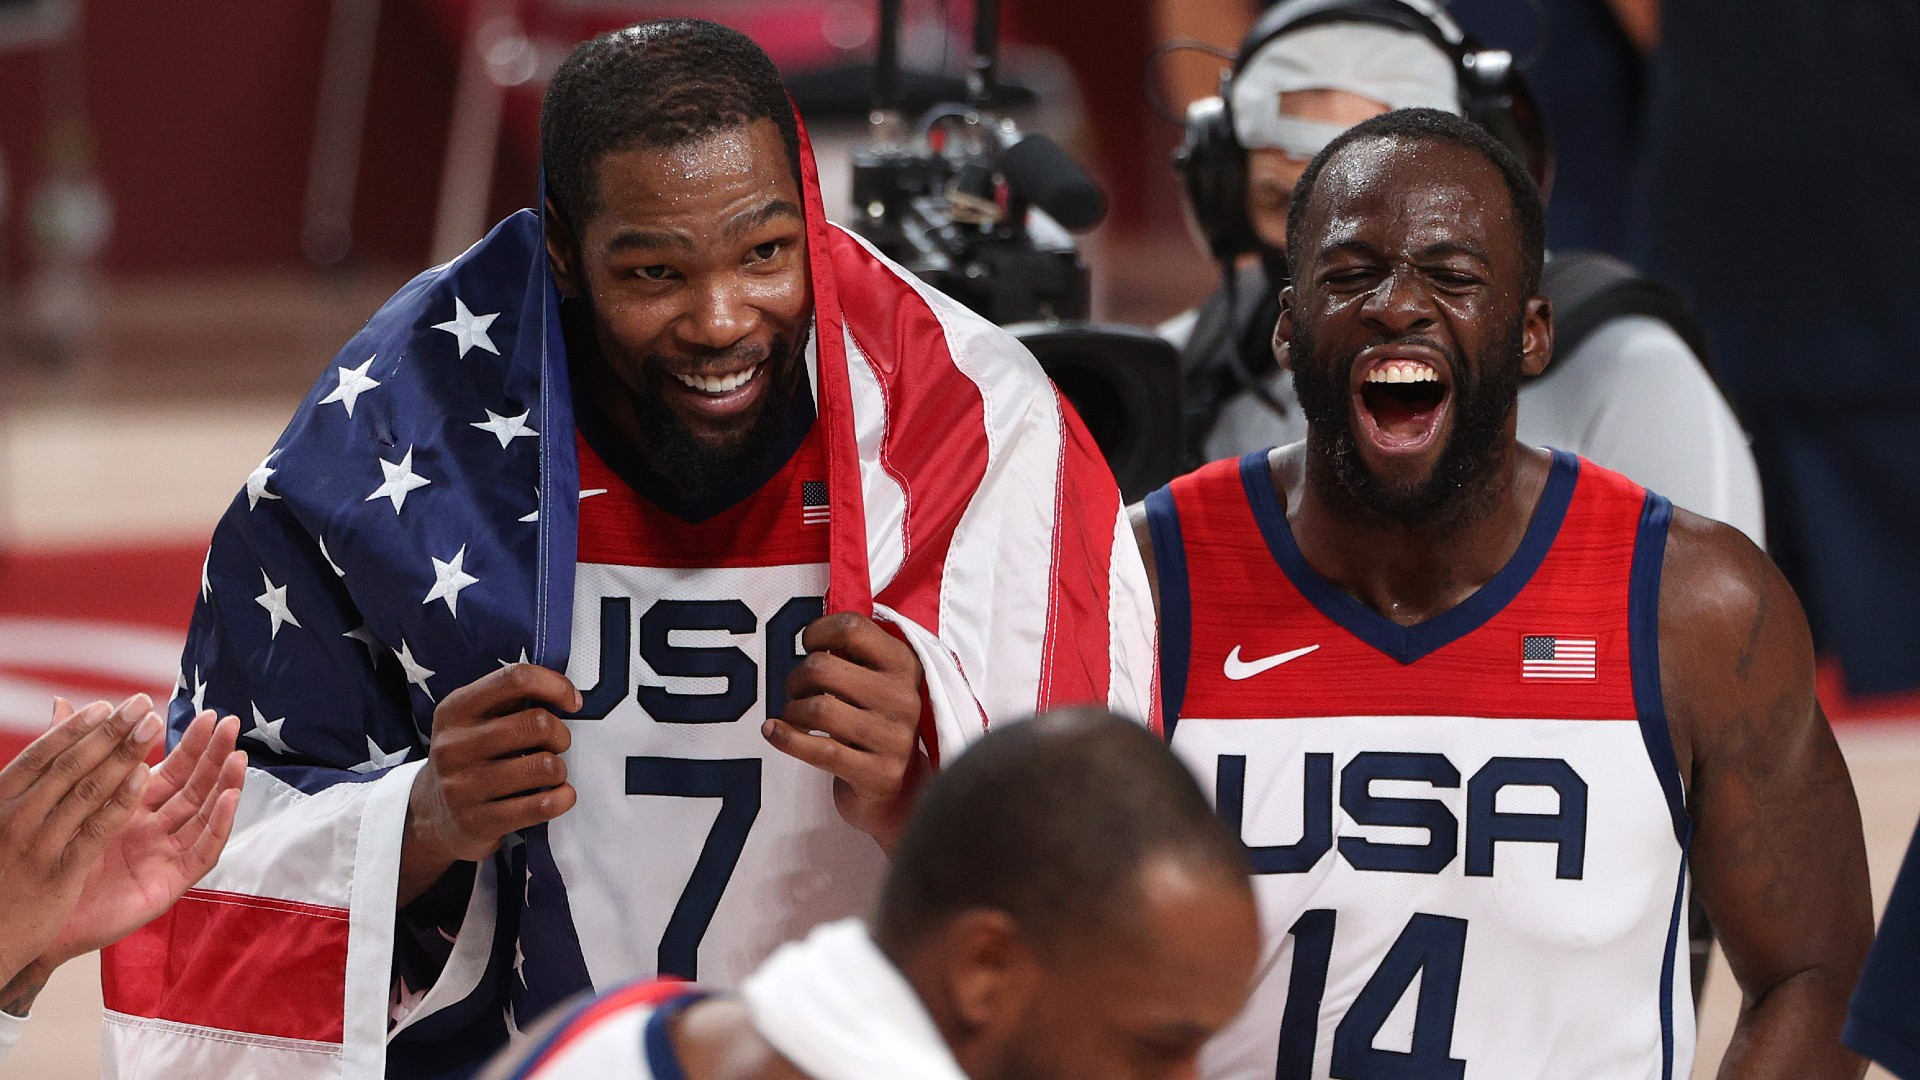 Kevin Durant and Draymond Green criticize critics of Team USA, including Kendrick Perkins, after winning the gold medal.